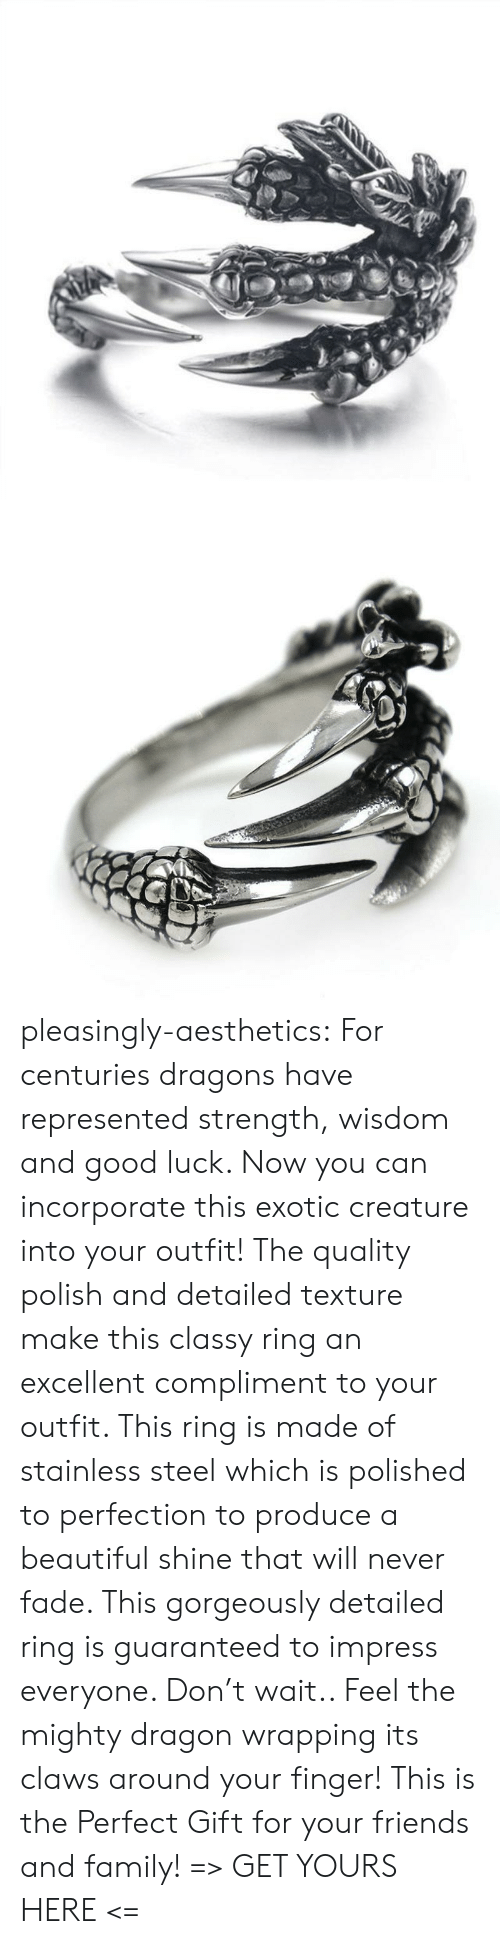 Beautiful, Family, and Friends: pleasingly-aesthetics: For centuries dragons have represented strength, wisdom and good luck. Now you can incorporate this exotic creature into your outfit! The quality polish and detailed texture make this classy ring an excellent compliment to your outfit. This ring is made of stainless steel which is polished to perfection to produce a beautiful shine that will never fade.  This gorgeously detailed ring is guaranteed to impress everyone. Don't wait.. Feel the mighty dragon wrapping its claws around your finger! This is the Perfect Gift for your friends and family! => GET YOURS HERE <=